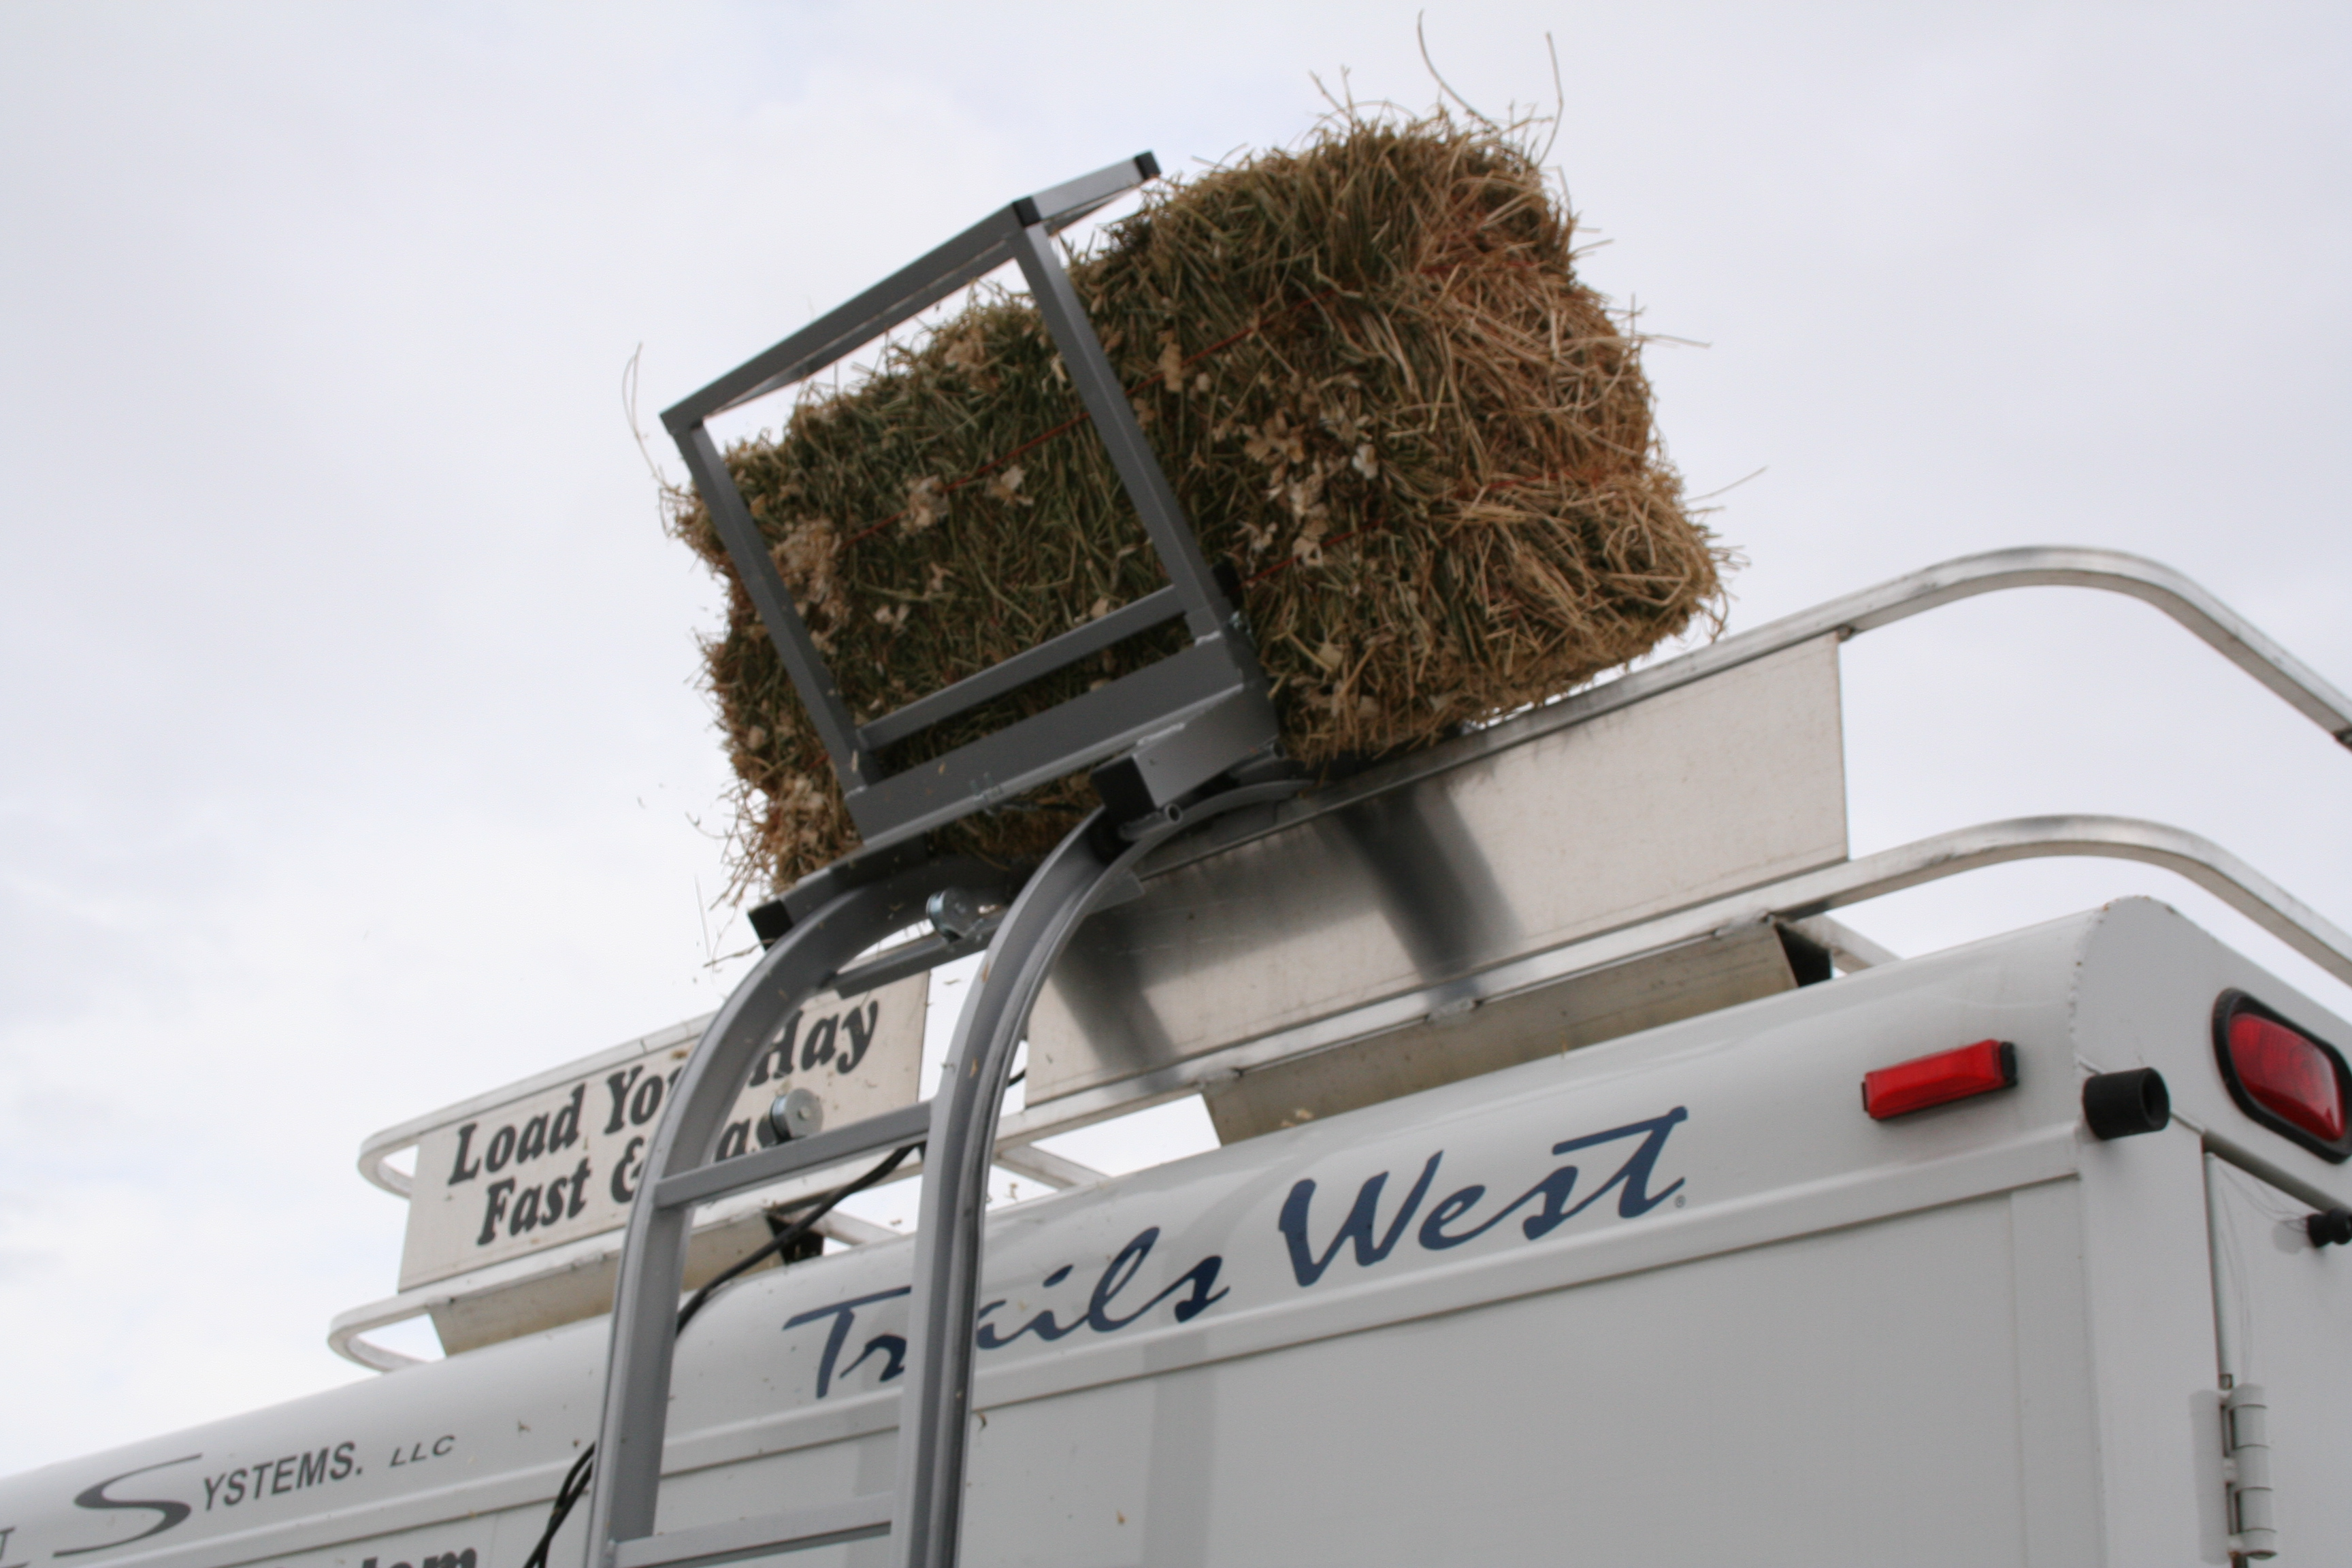 Bale Bucker loads bales on your trailer - welcome to mrtrailer com